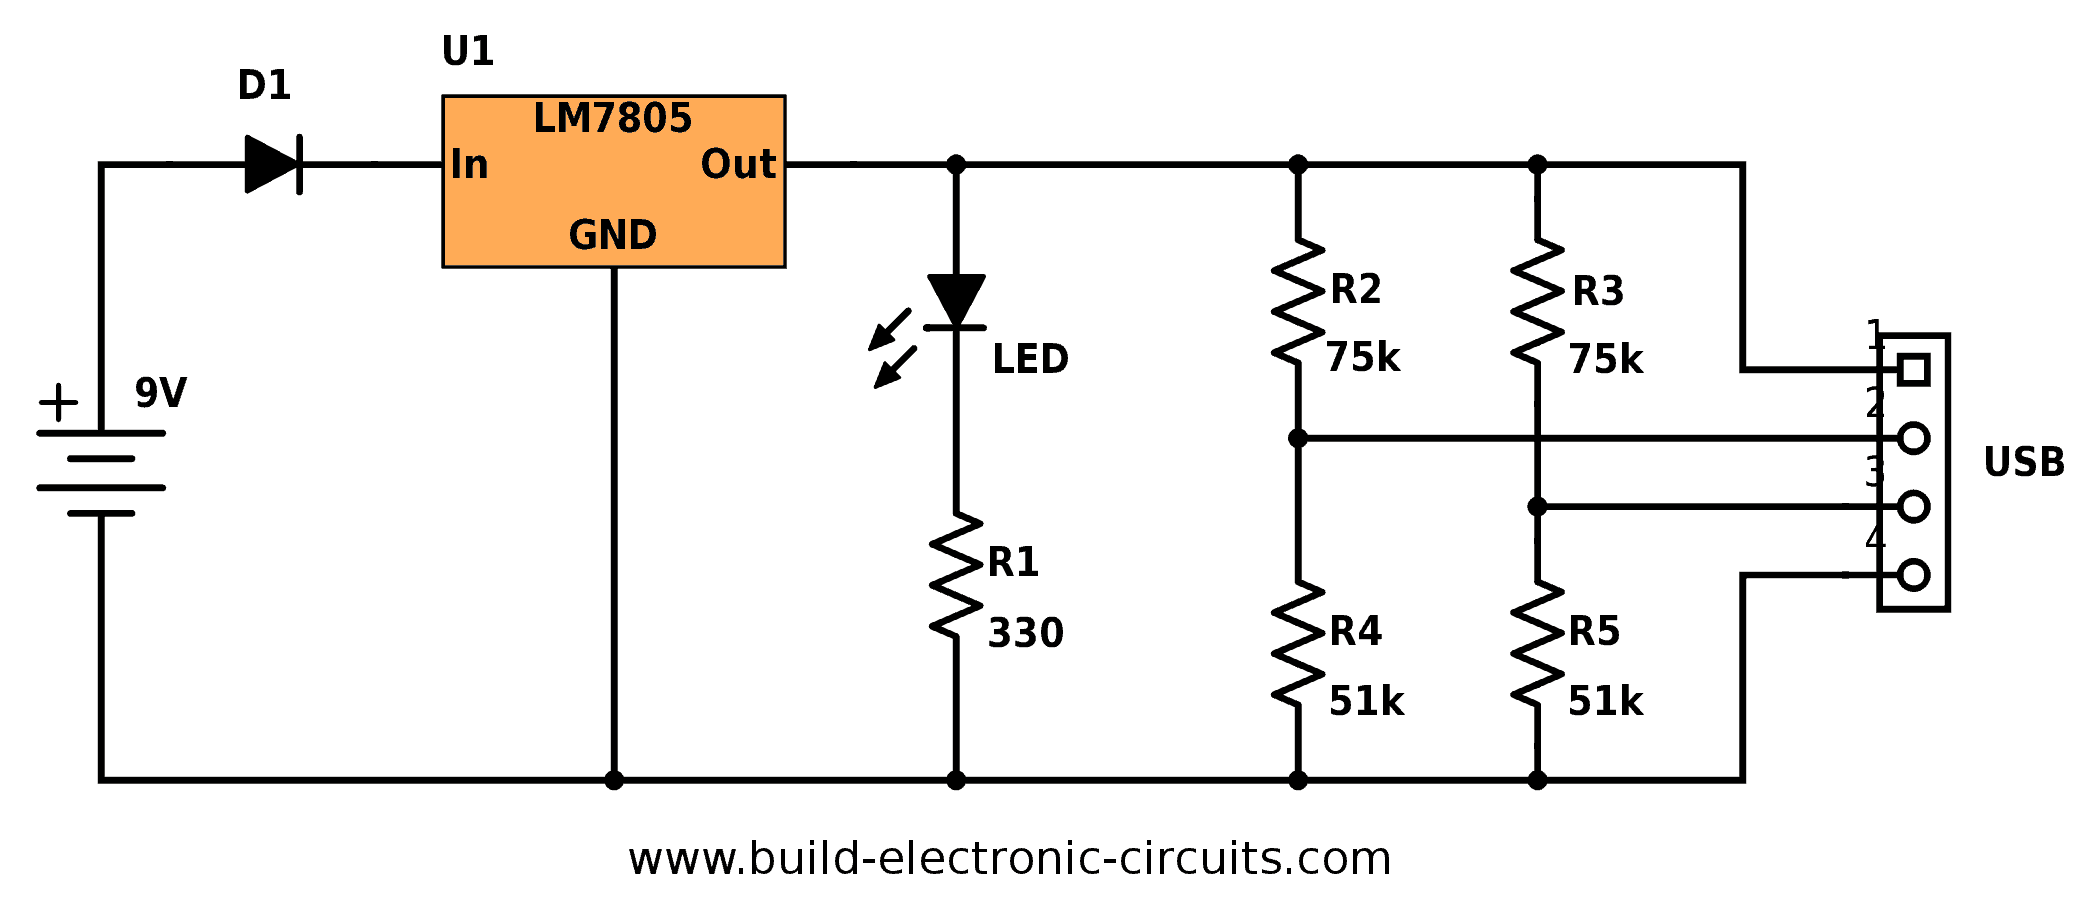 Battery Tester Circuit Breadboard Schematic Portable Usb Charger Build Electronic Circuits Diagram